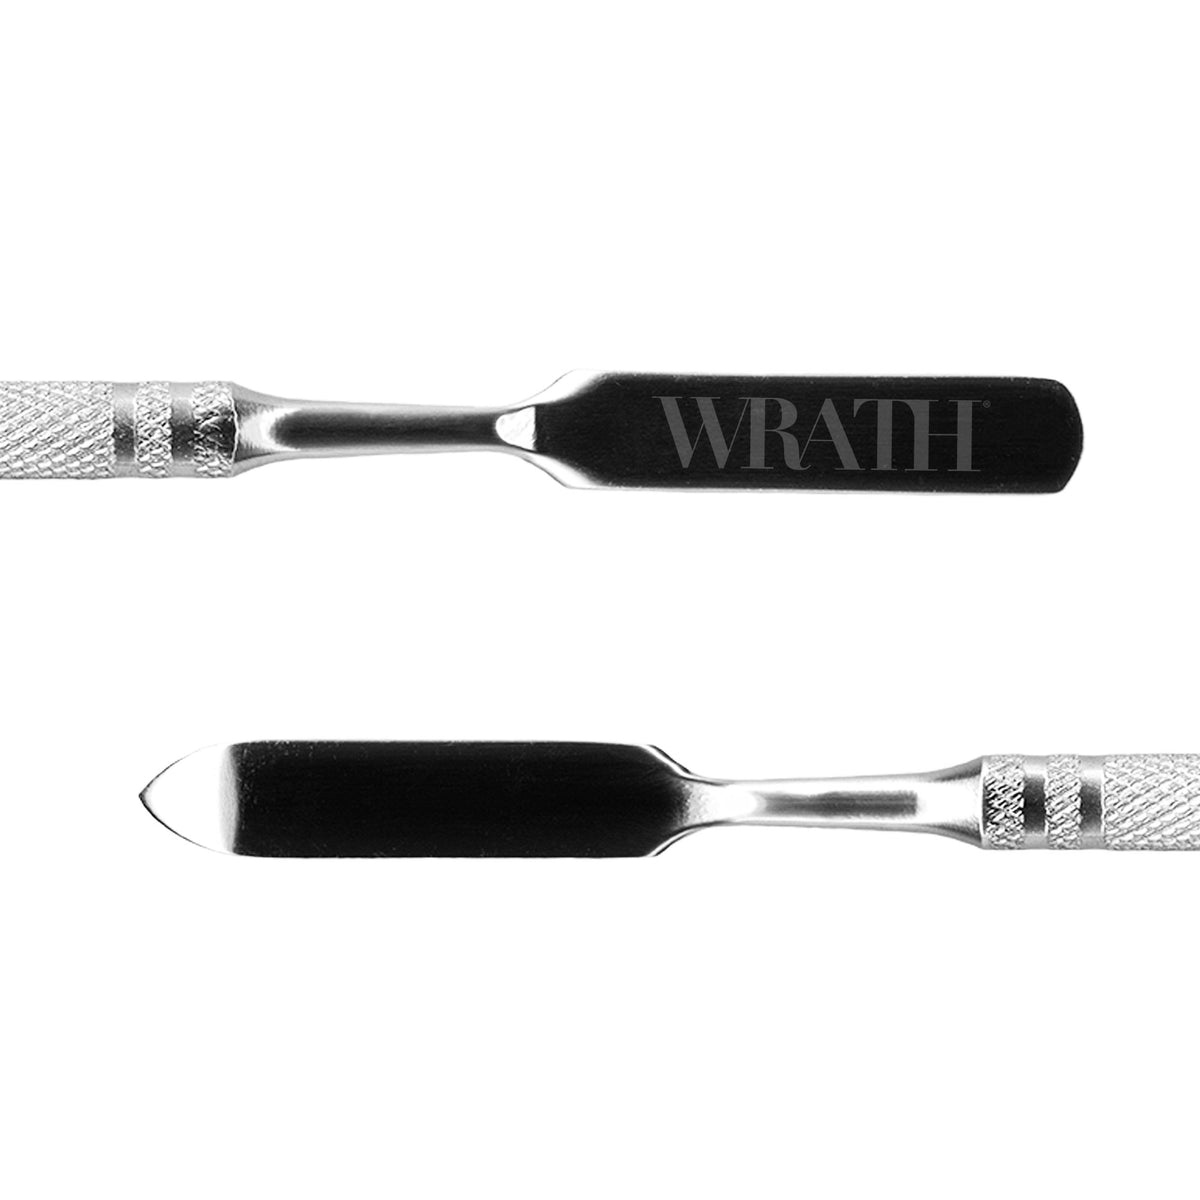 WRATH Stainless Steel Double Ended Spatula - Red Carpet FX - Professional Makeup